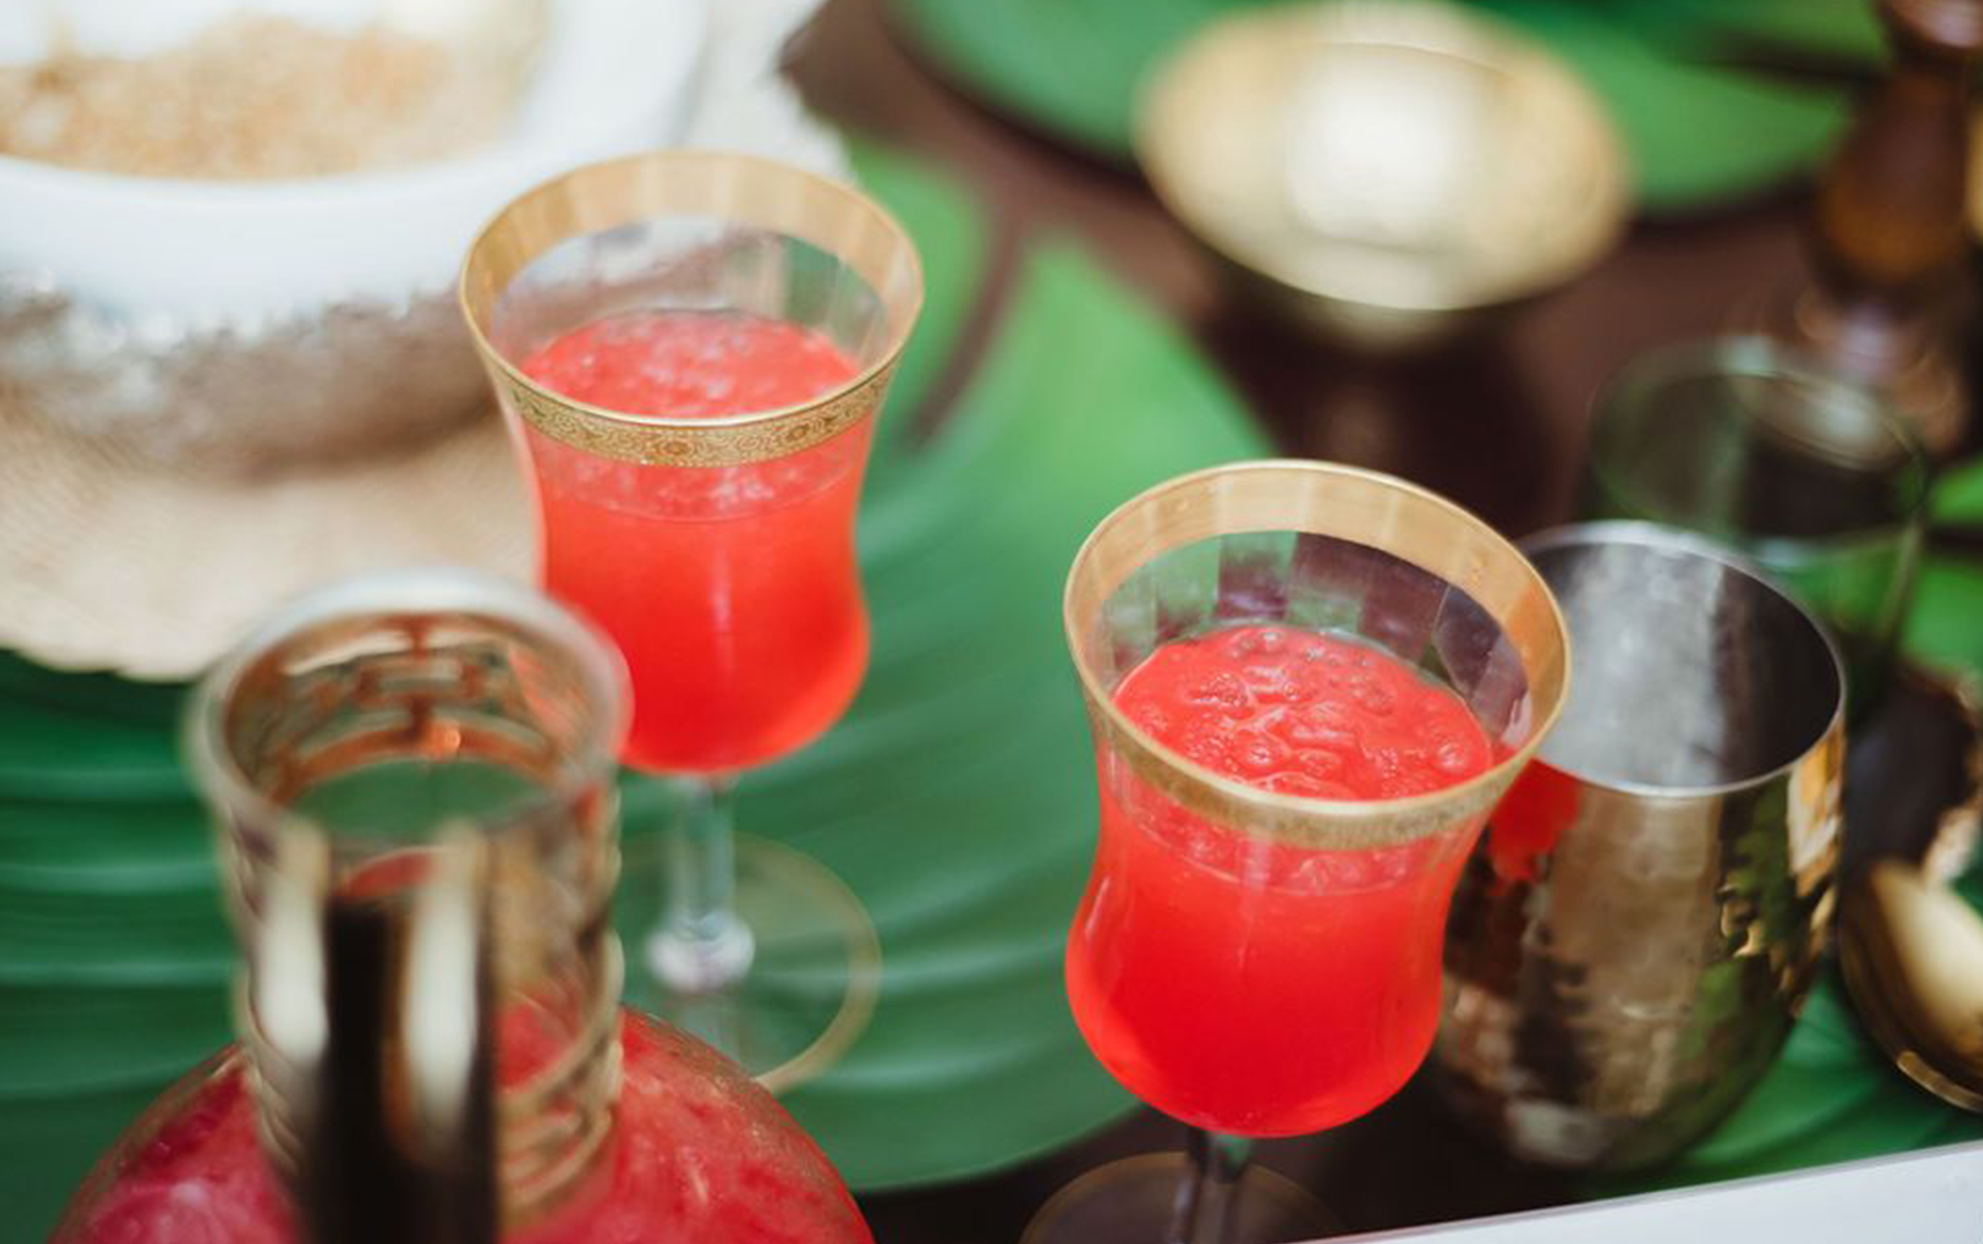 Red drink is a Juneteenth celebration staple. PHOTO: COURTESY OF BLACK SOUTHERN BELLE/CHANTILLY LACE PHOTOGRAPHY